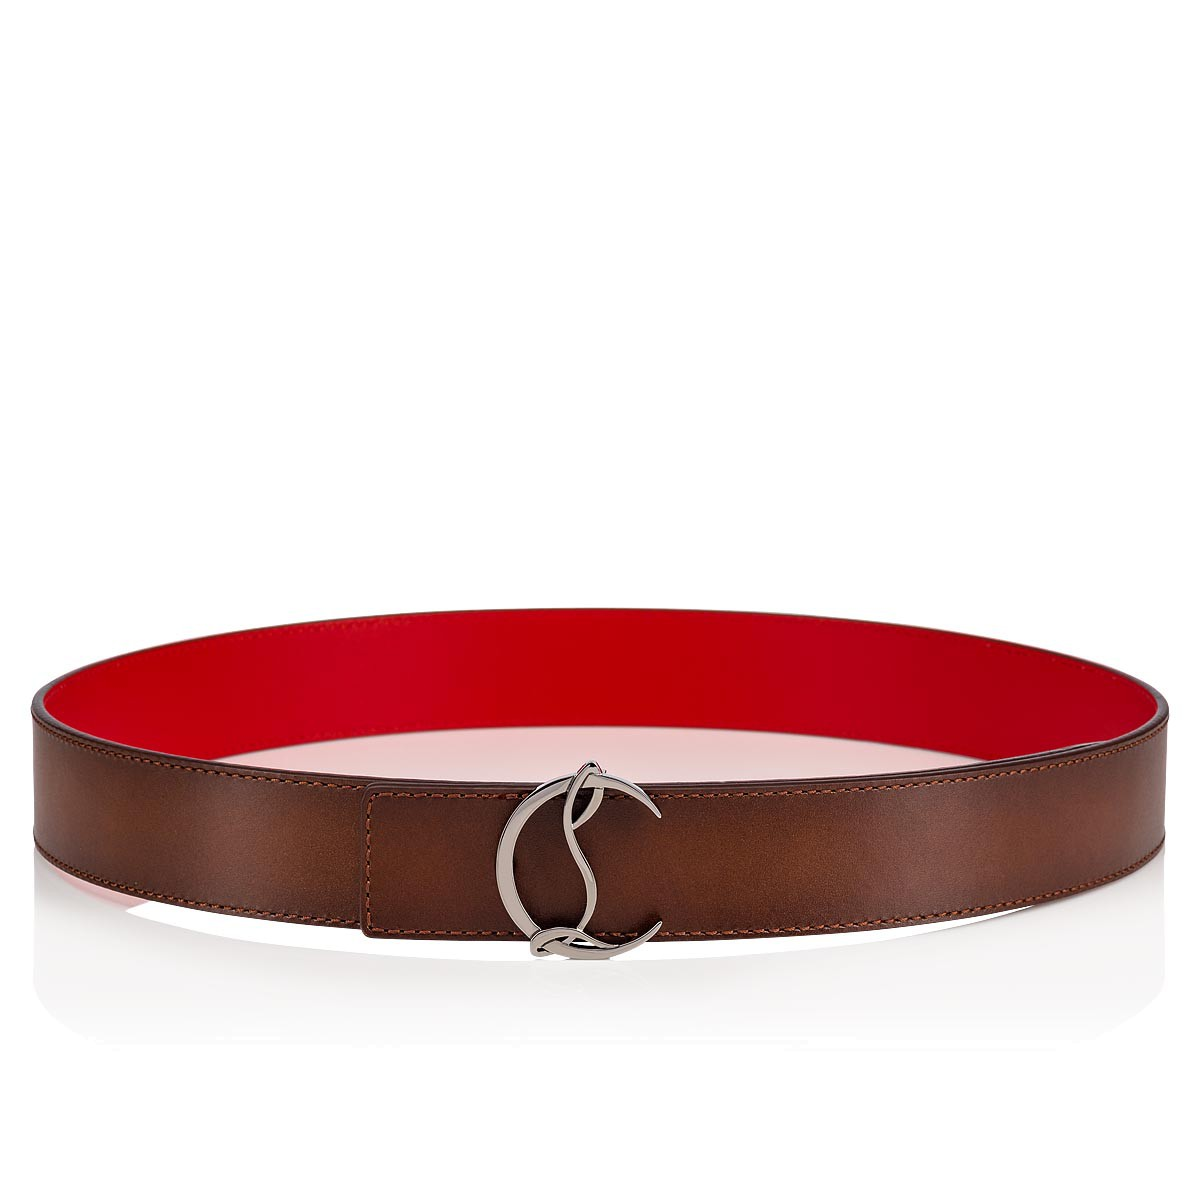 Belt - Cl Logo Belt - Christian Louboutin